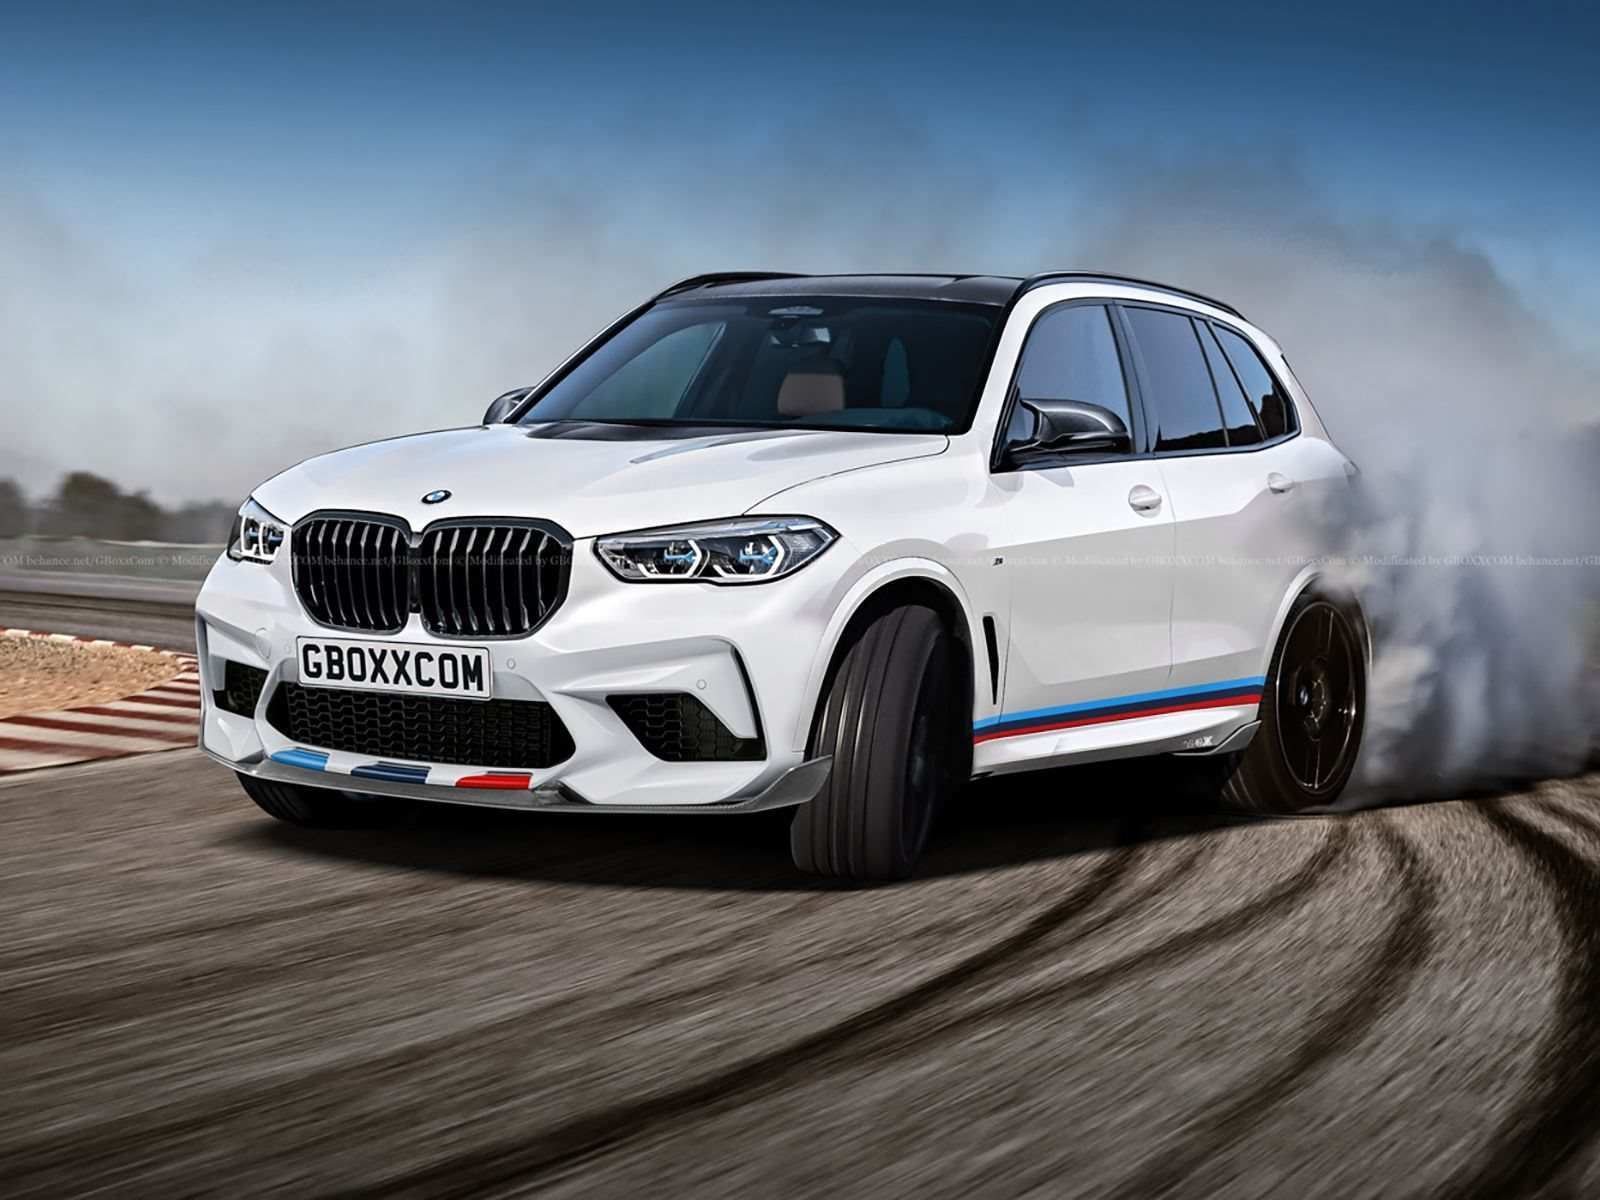 91 New 2020 Bmw X5 Release Date Research New with 2020 Bmw X5 Release Date